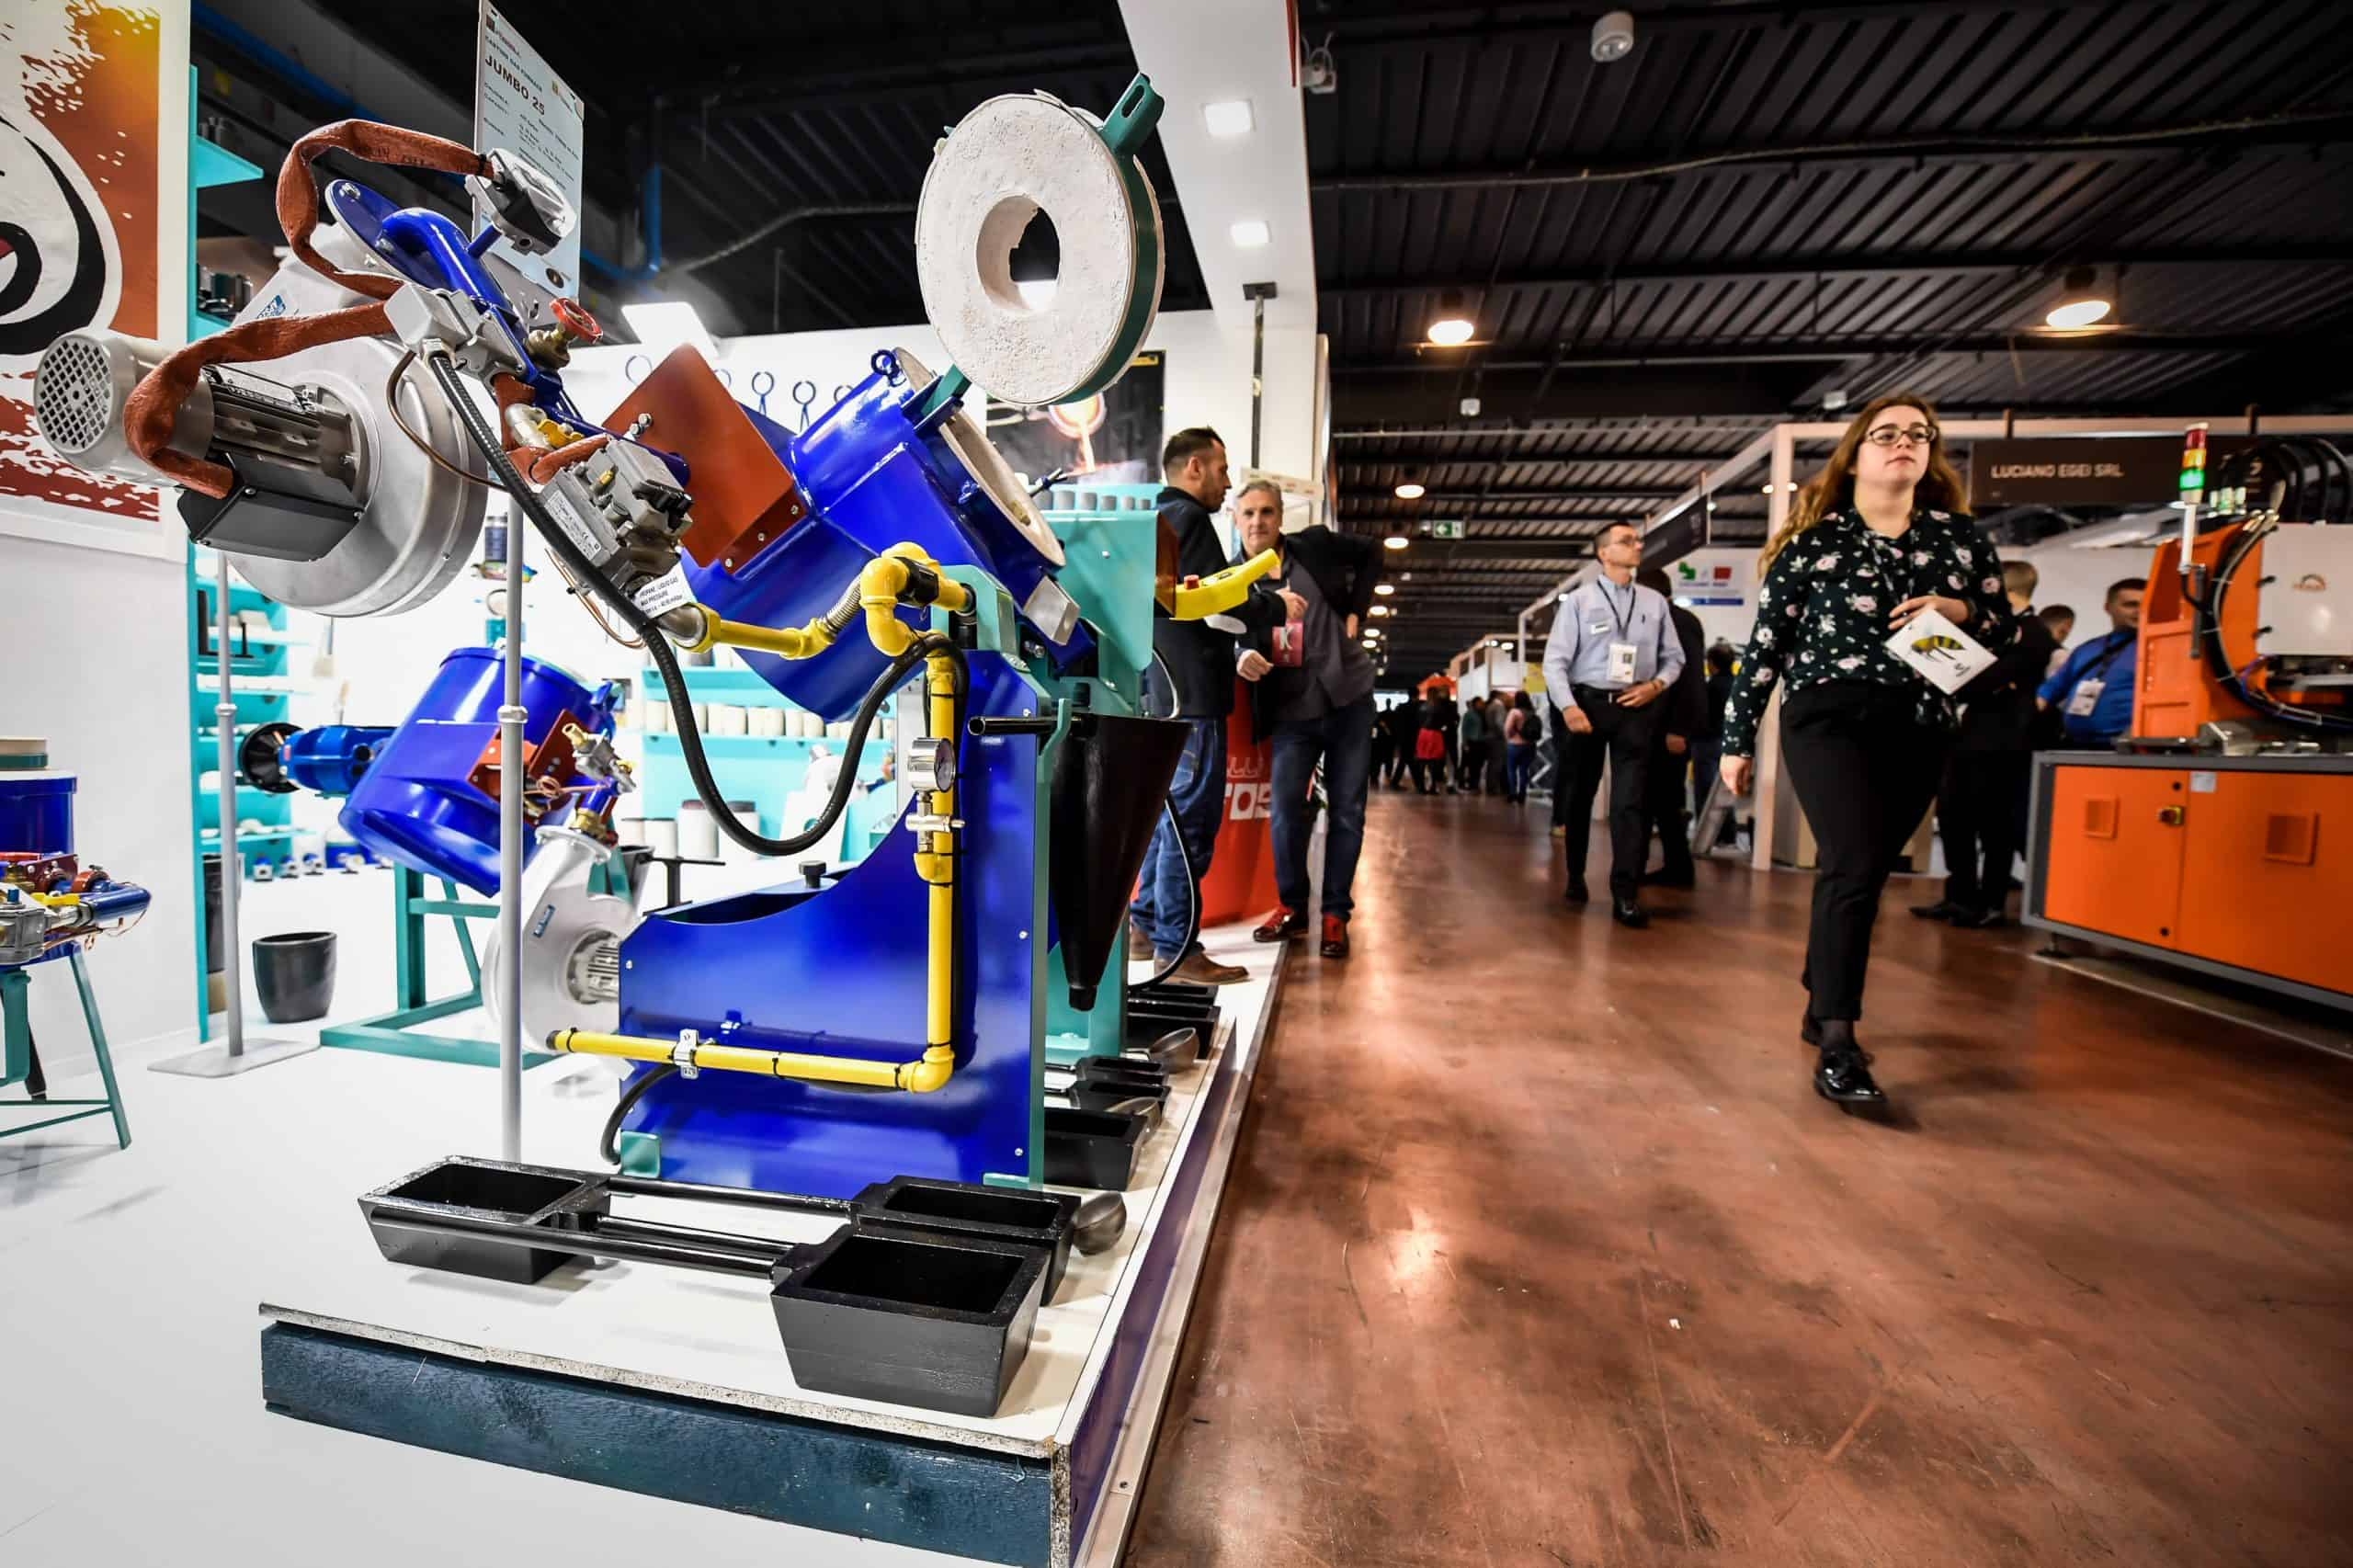 T.GOLD, international show for jewellery machinery and manufacturing, will return, with physical attendance, in same halls as Vicenzaoro September